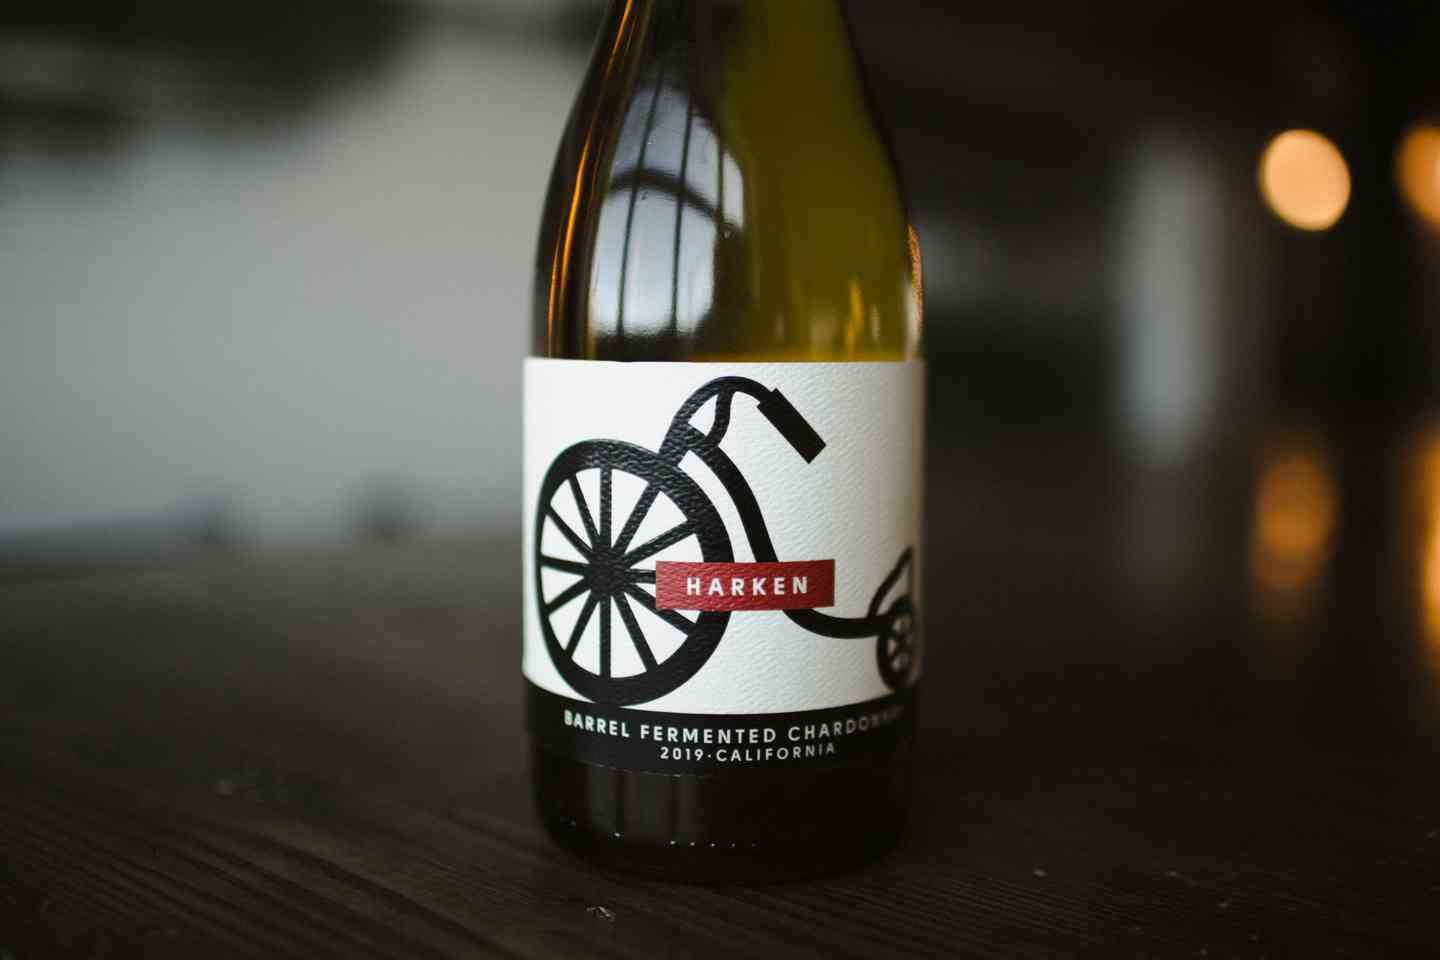 Harken Barrel Fermented Chardonnay (California)